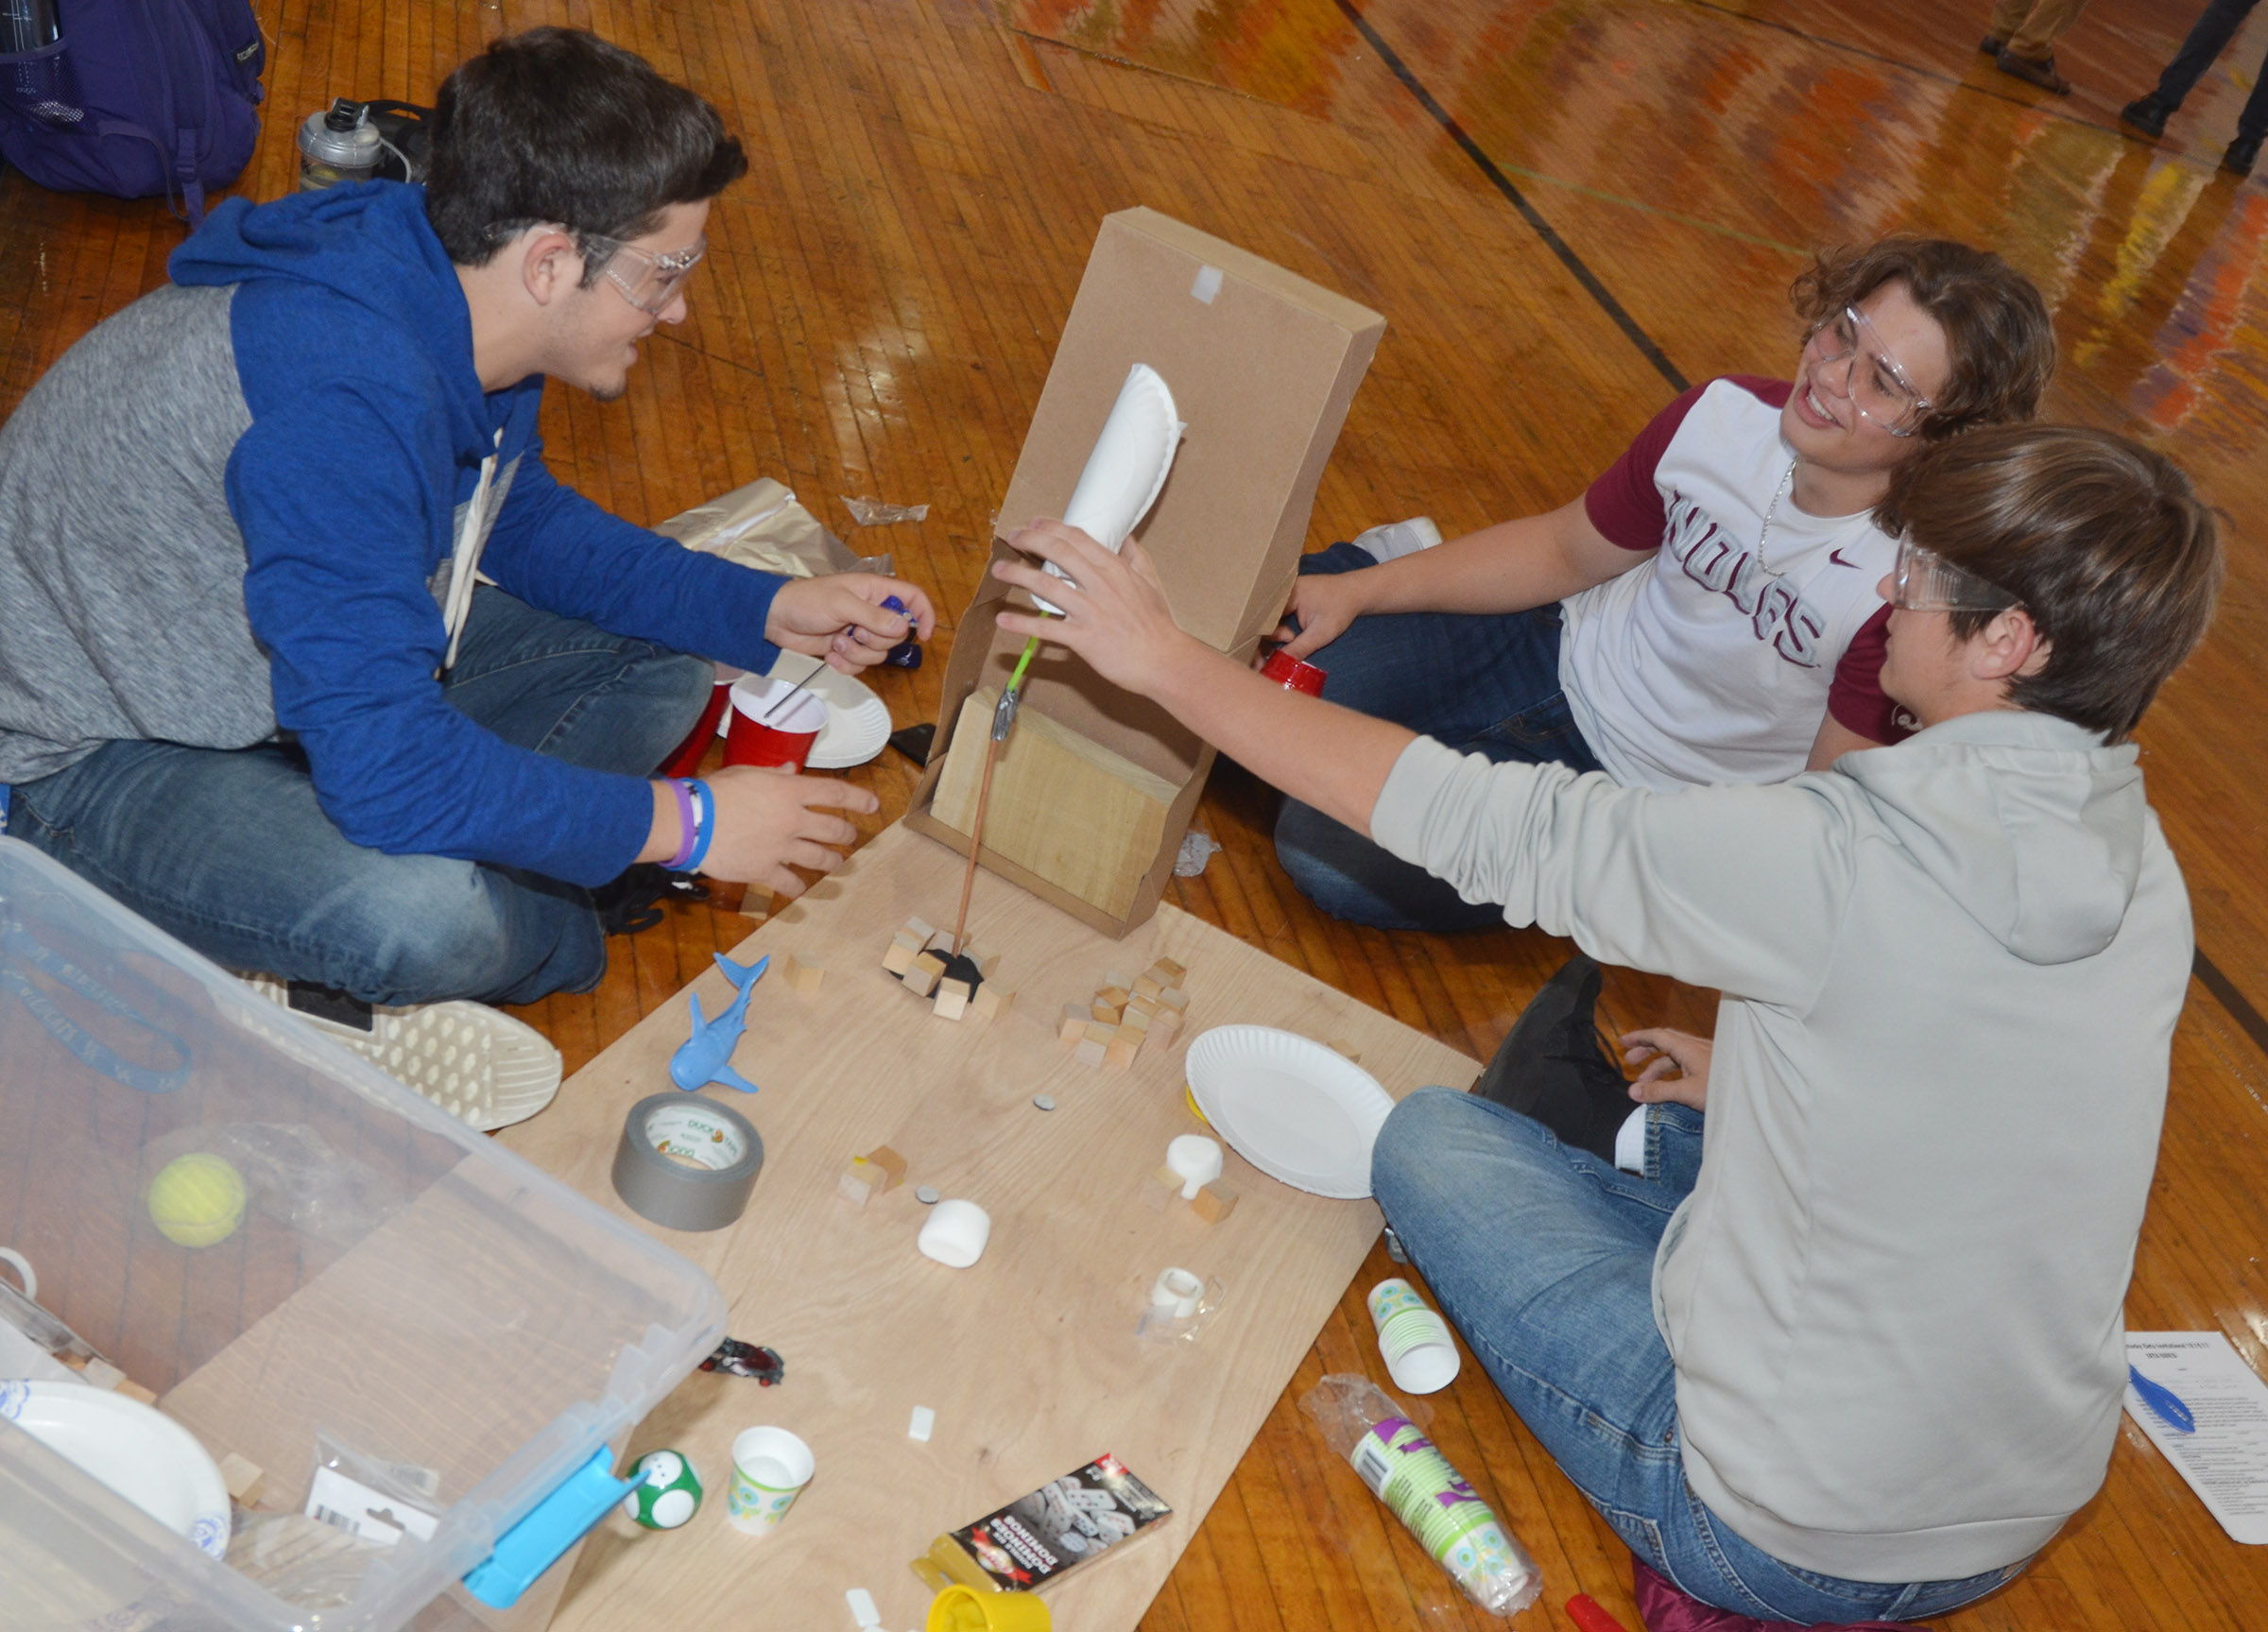 From left, CHS juniors Ryan Kearney, Treyce Mattingly and Myles Murrell build their Rube Goldberg machine in the design build competition.